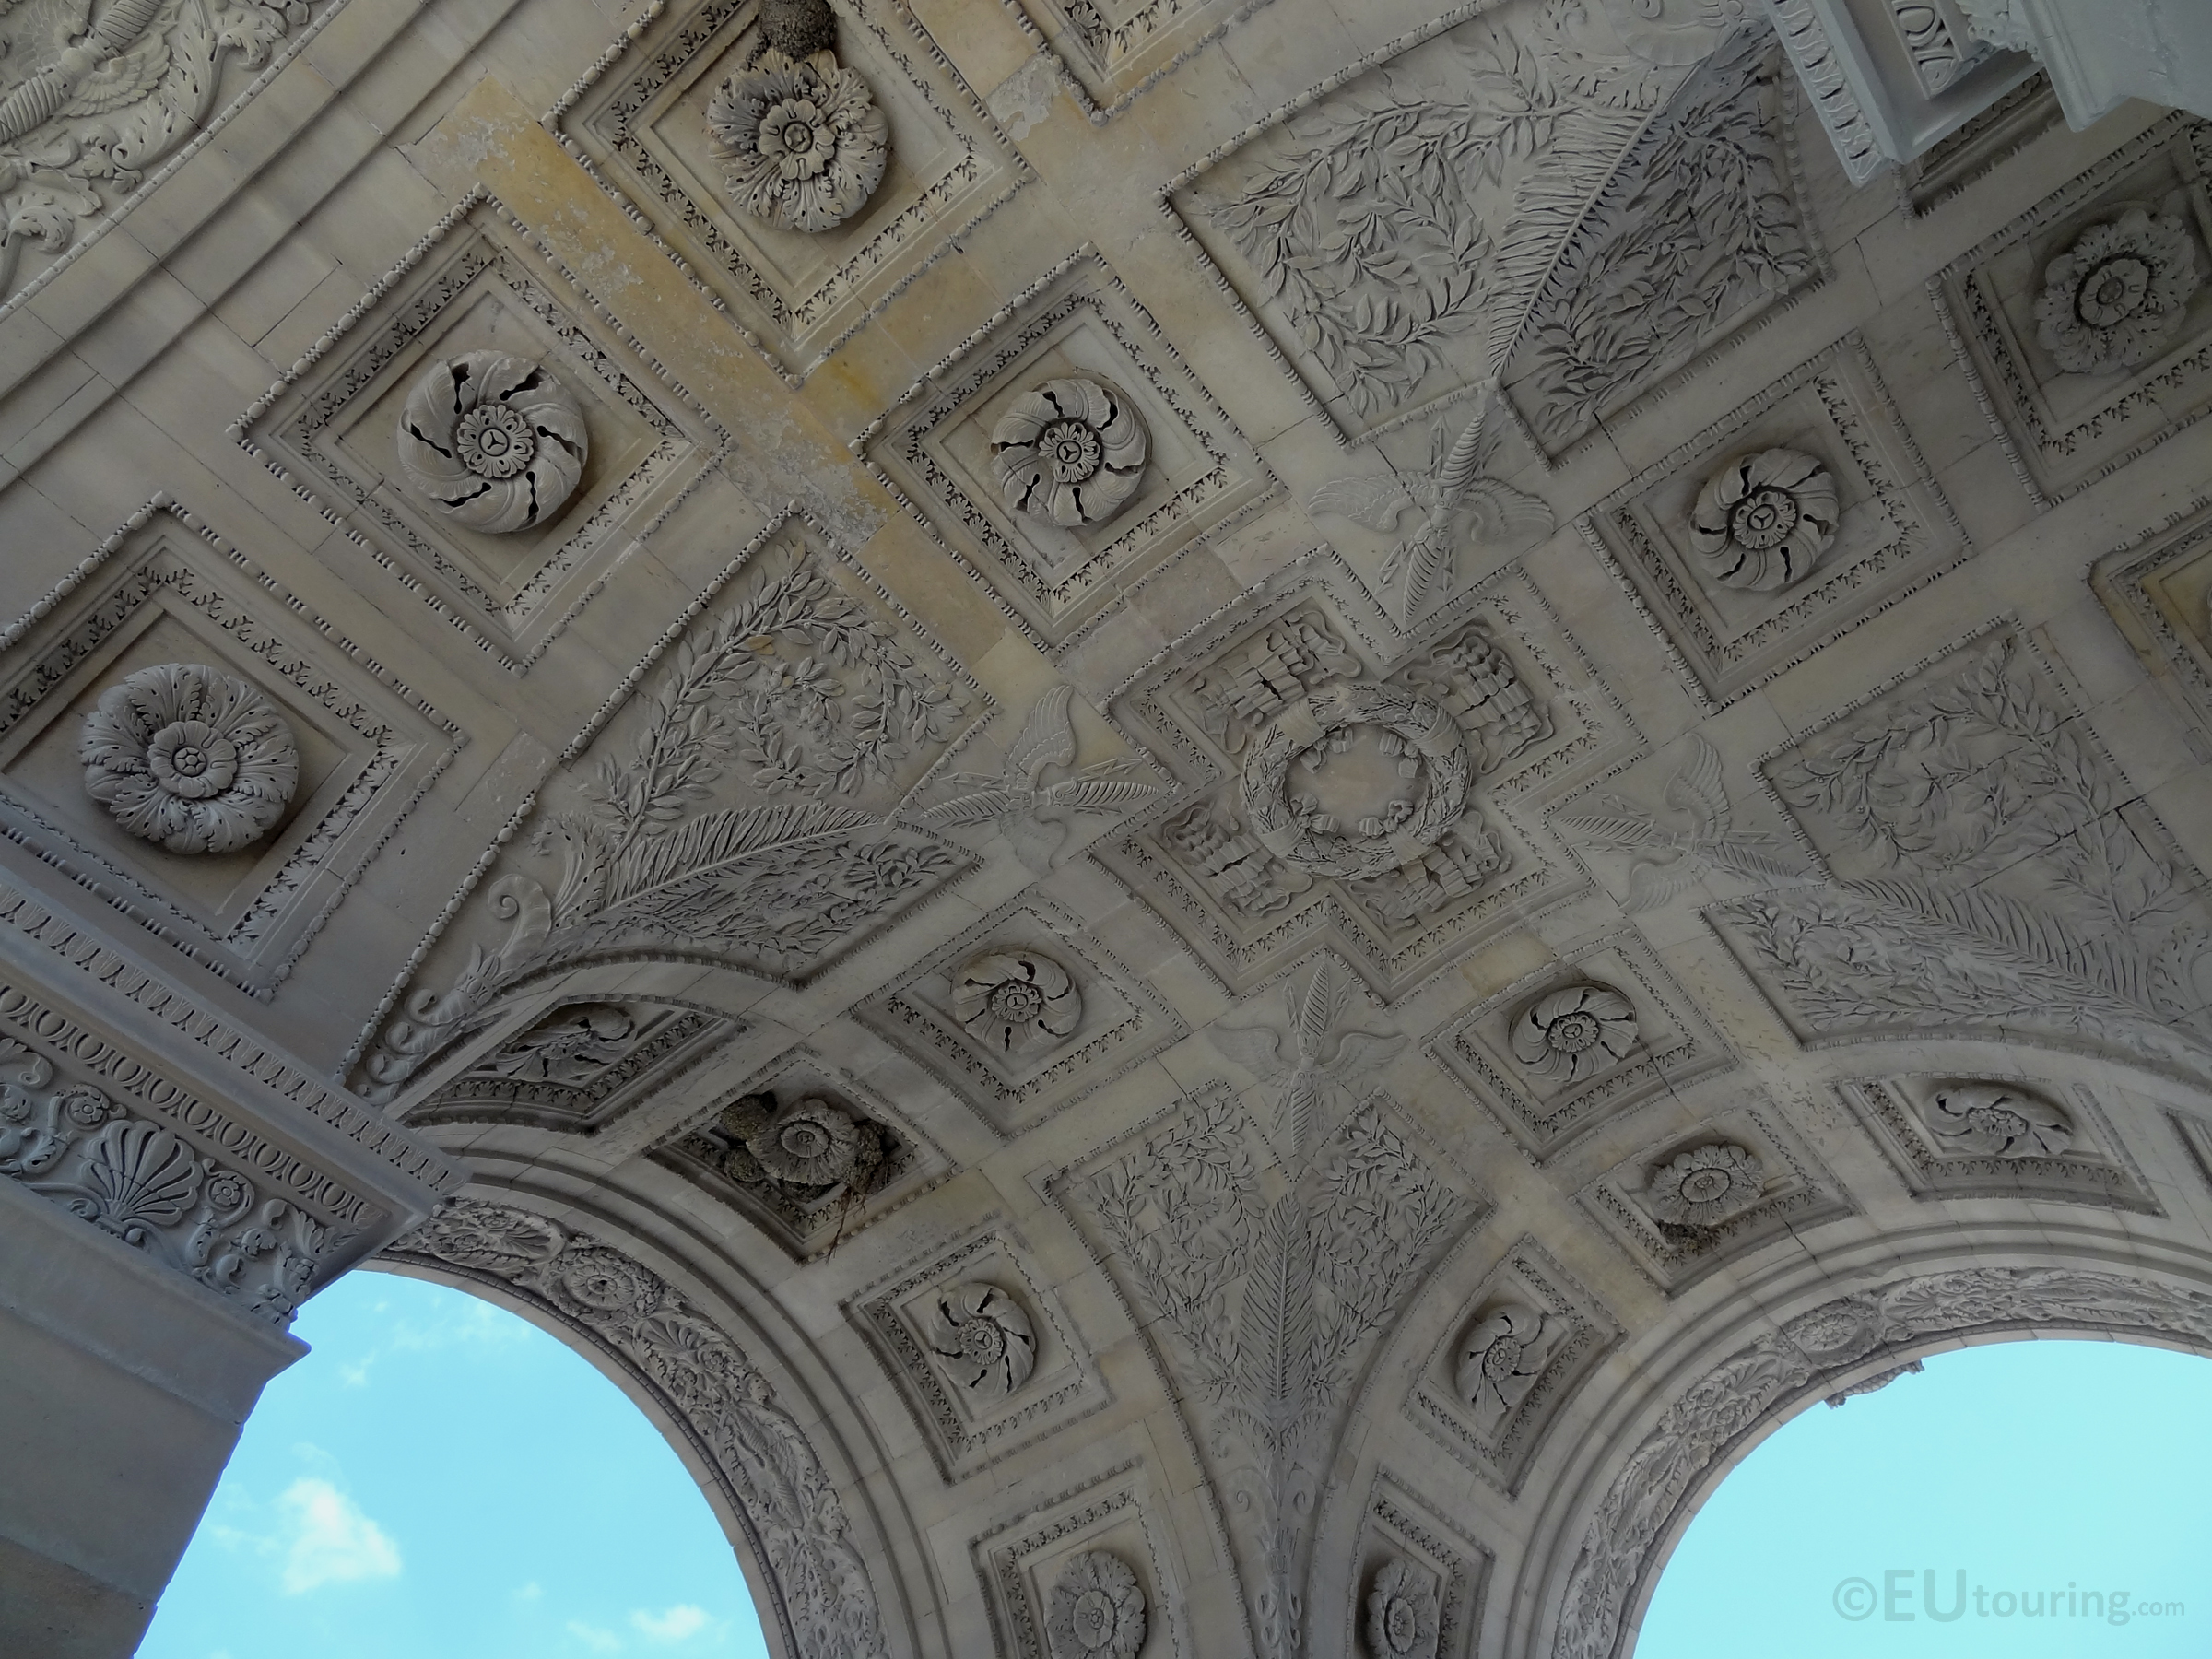 Underneath the smaller arch